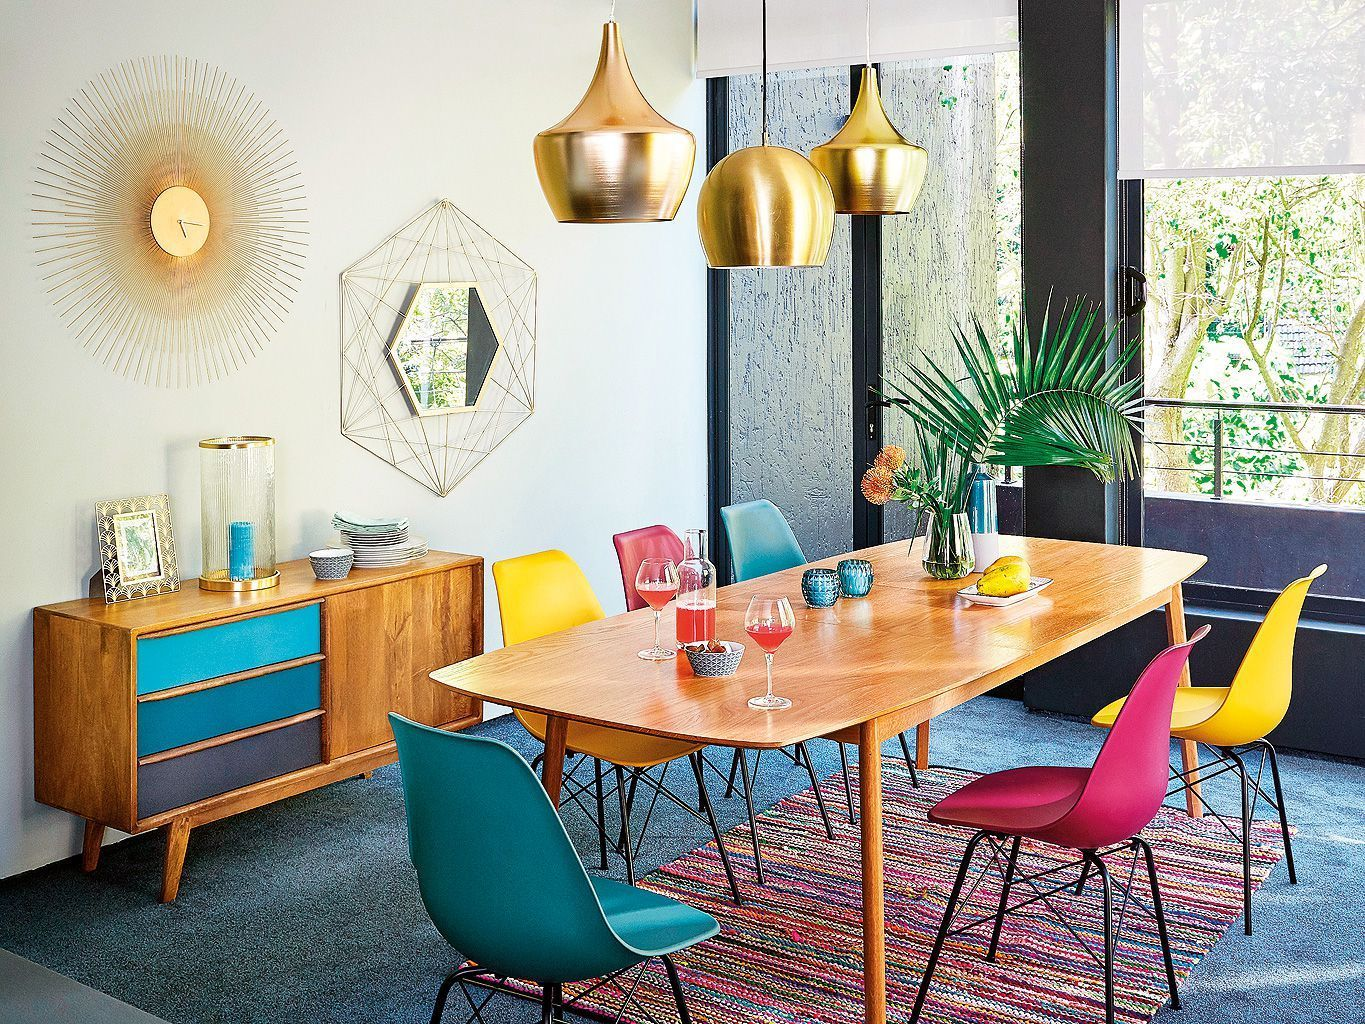 a bright mid century modenr dining space done with various shades of red, ble and metallics for a shiny touch